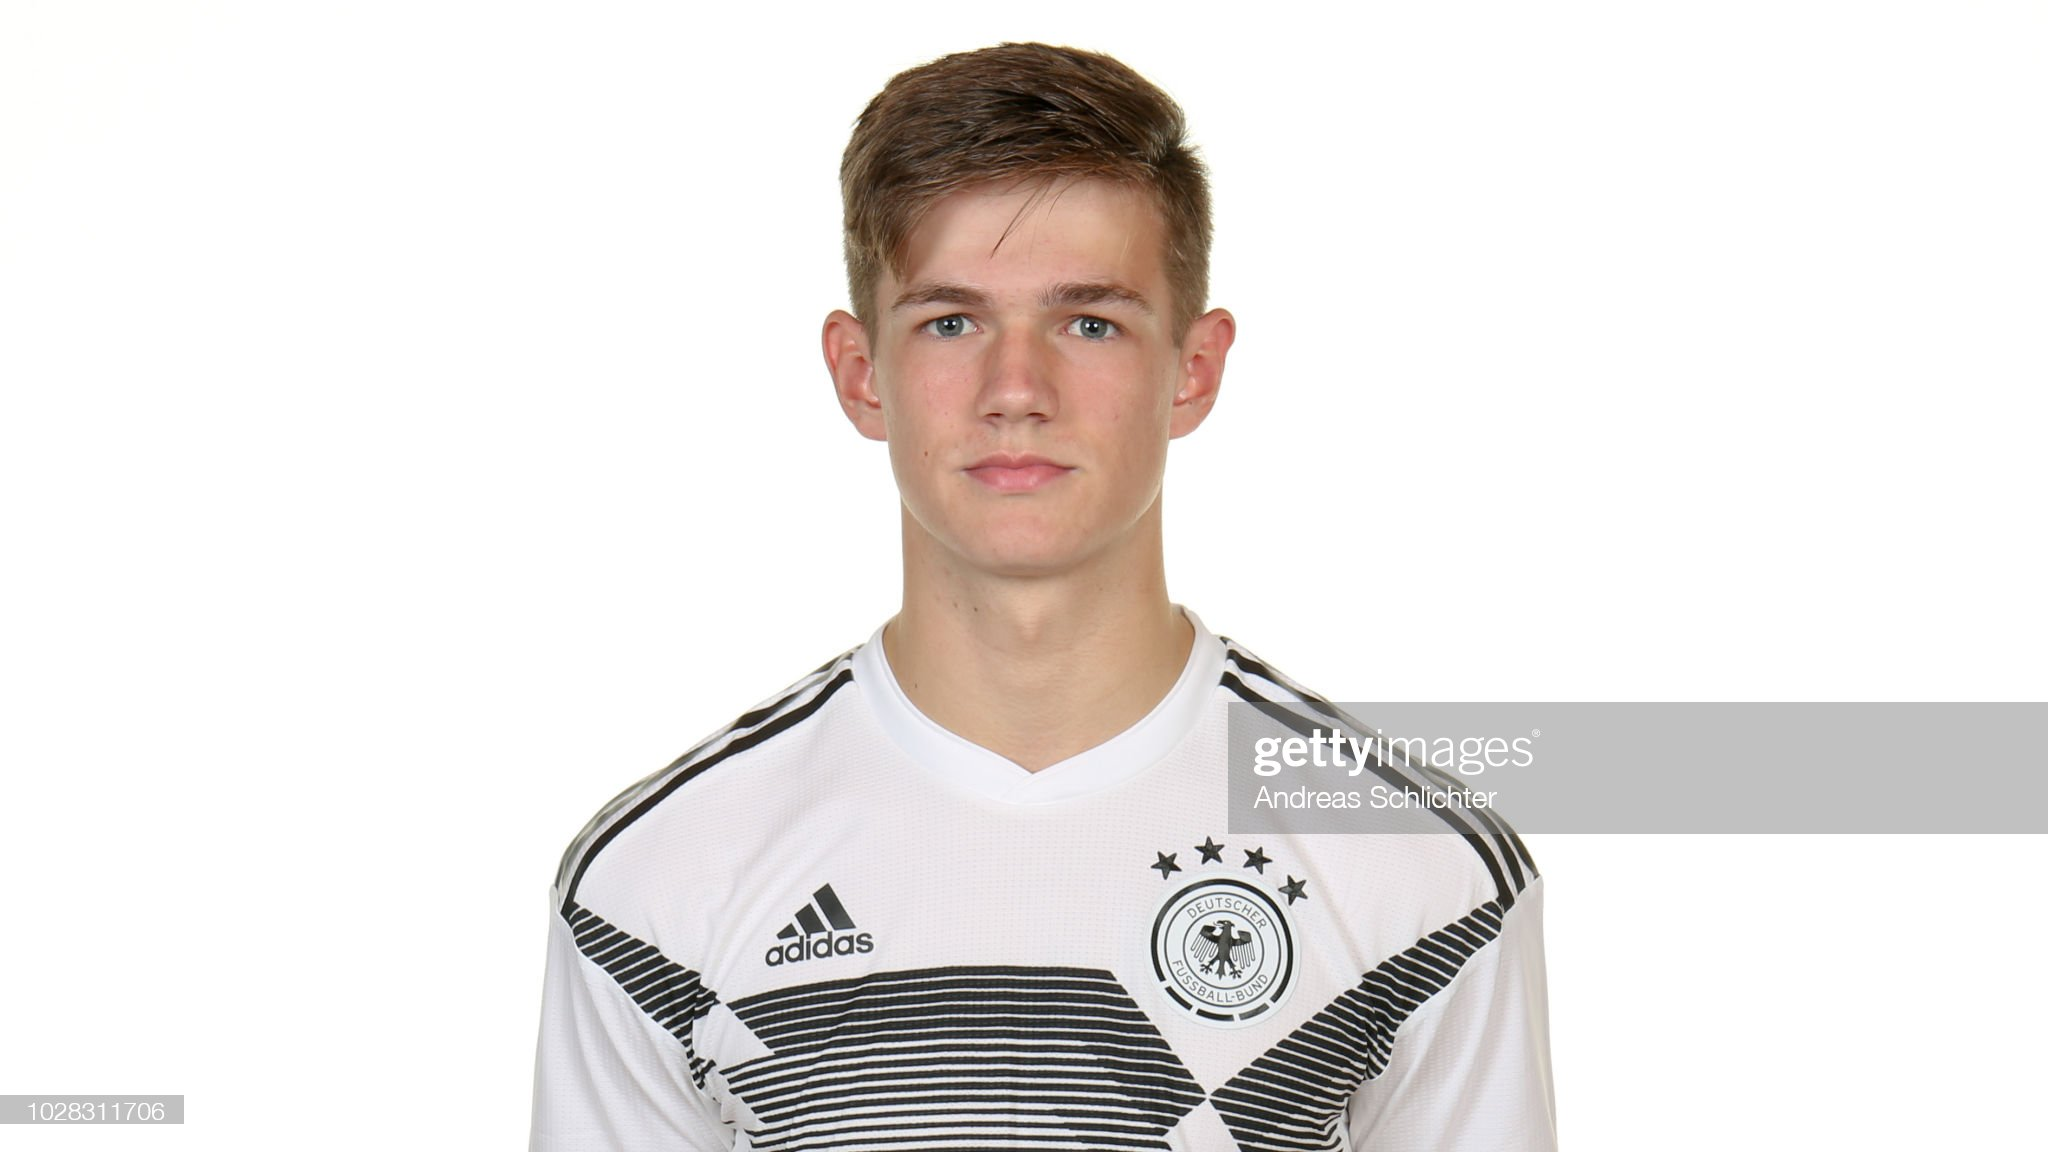 https://media.gettyimages.com/photos/jan-thielmann-poses-during-the-u17-germany-team-presentation-on-6-picture-id1028311706?s=2048x2048